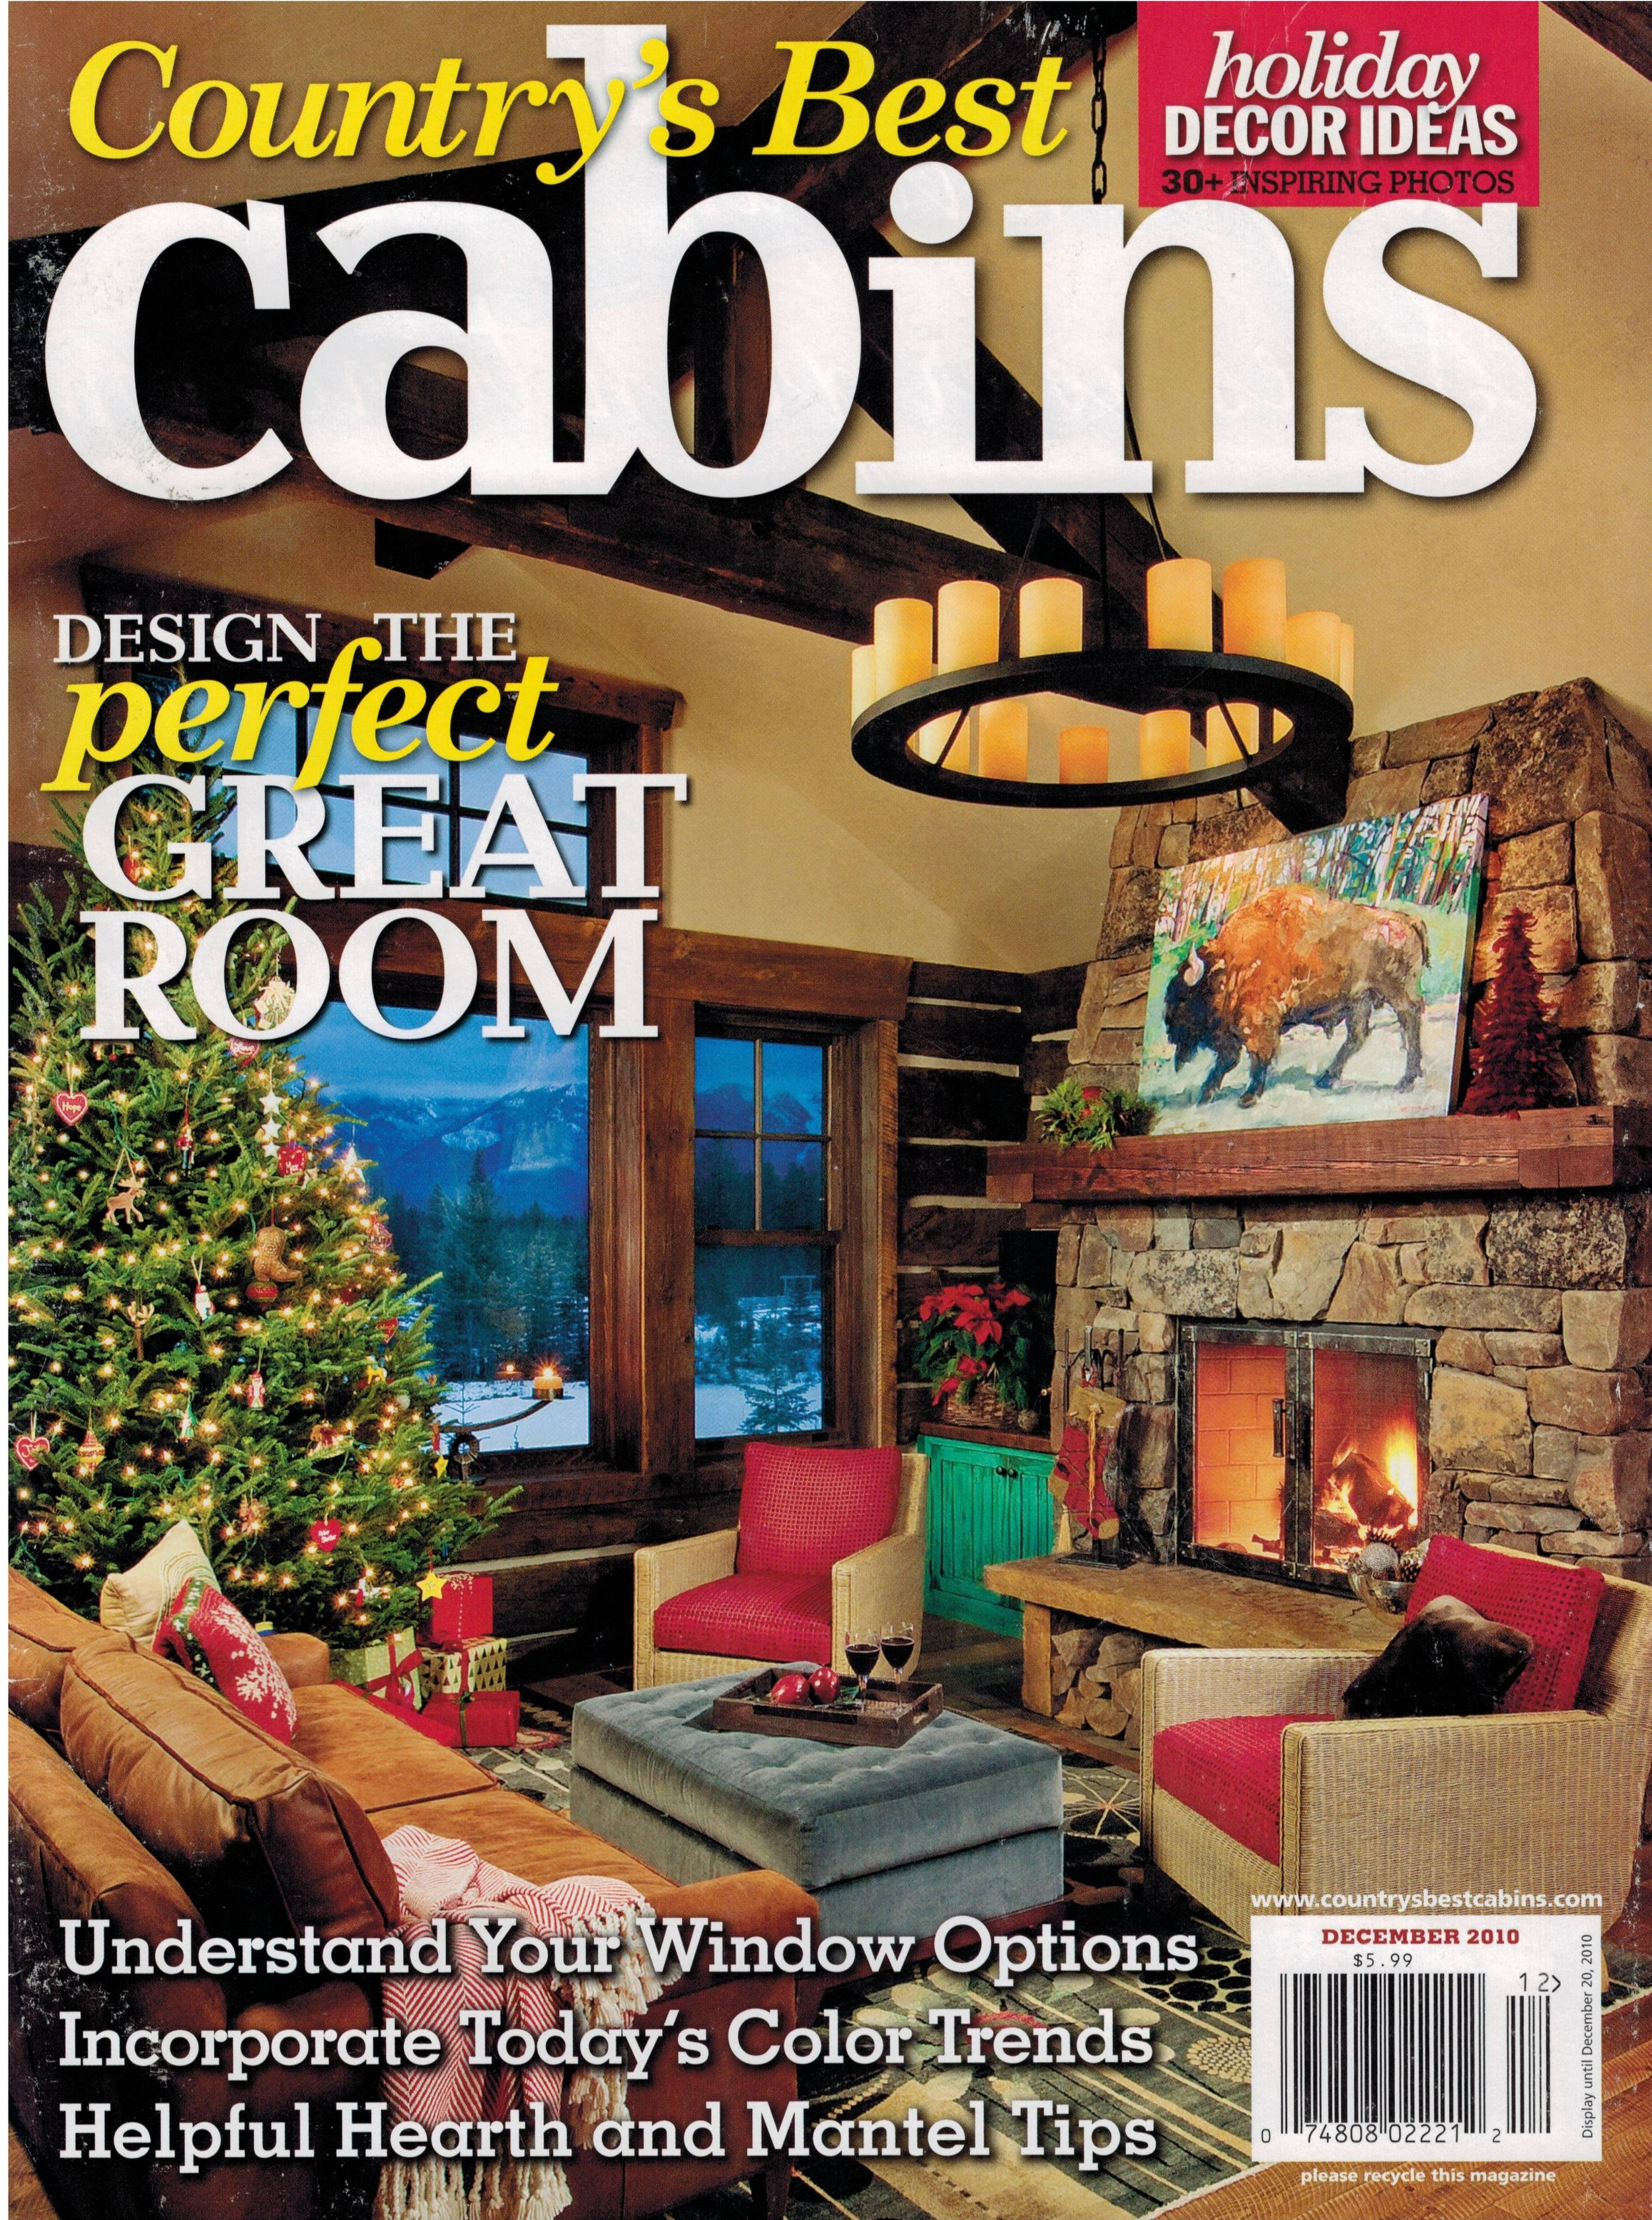 2 Countrys Best Cabins-December 2010.jpg